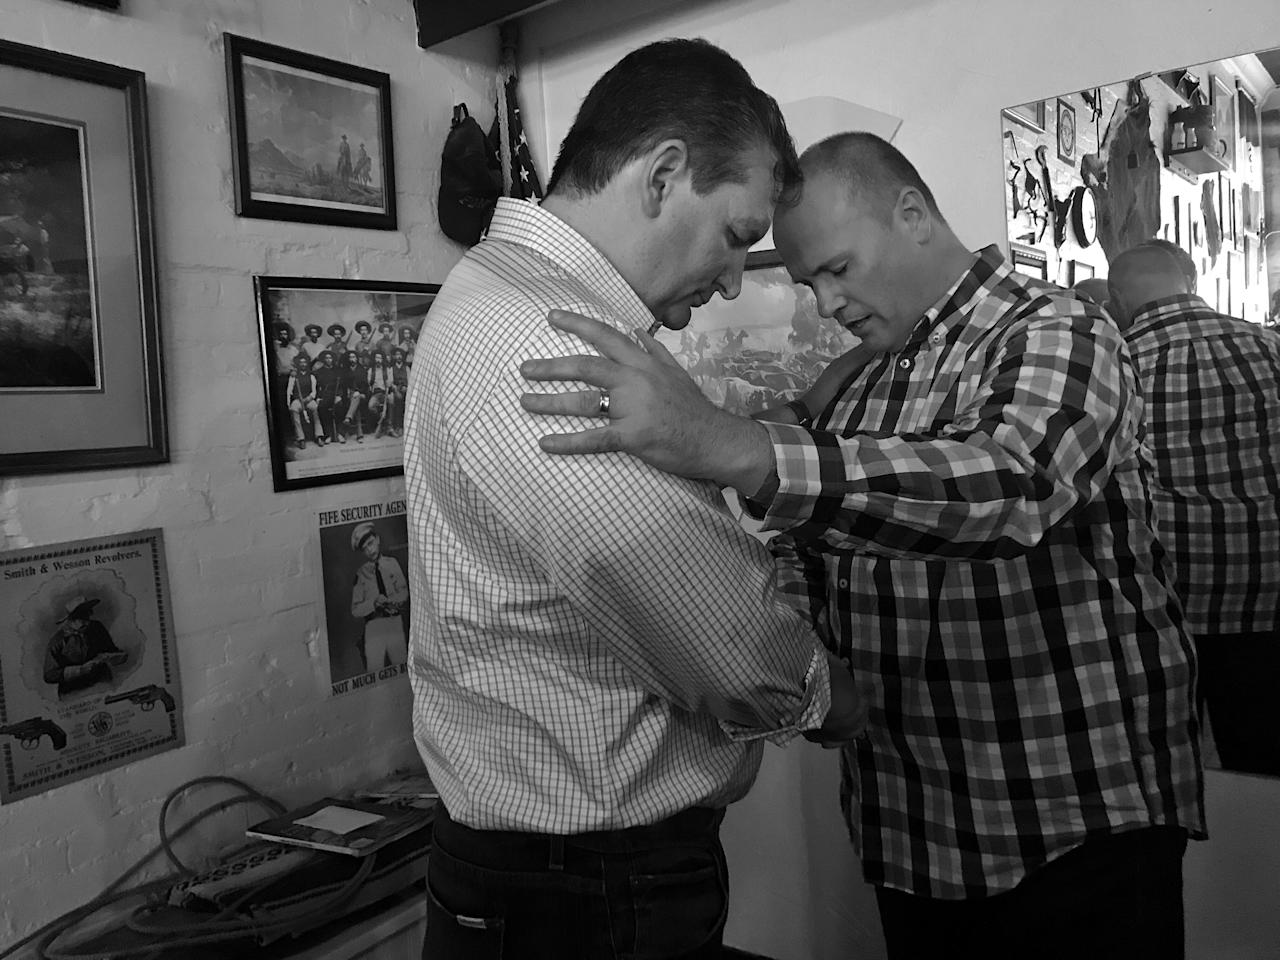 <p>A man prays for Sen. Ted Cruz after a campaign event in Sulphur Springs, Texas. (Photo: Holly Bailey/Yahoo News) </p>